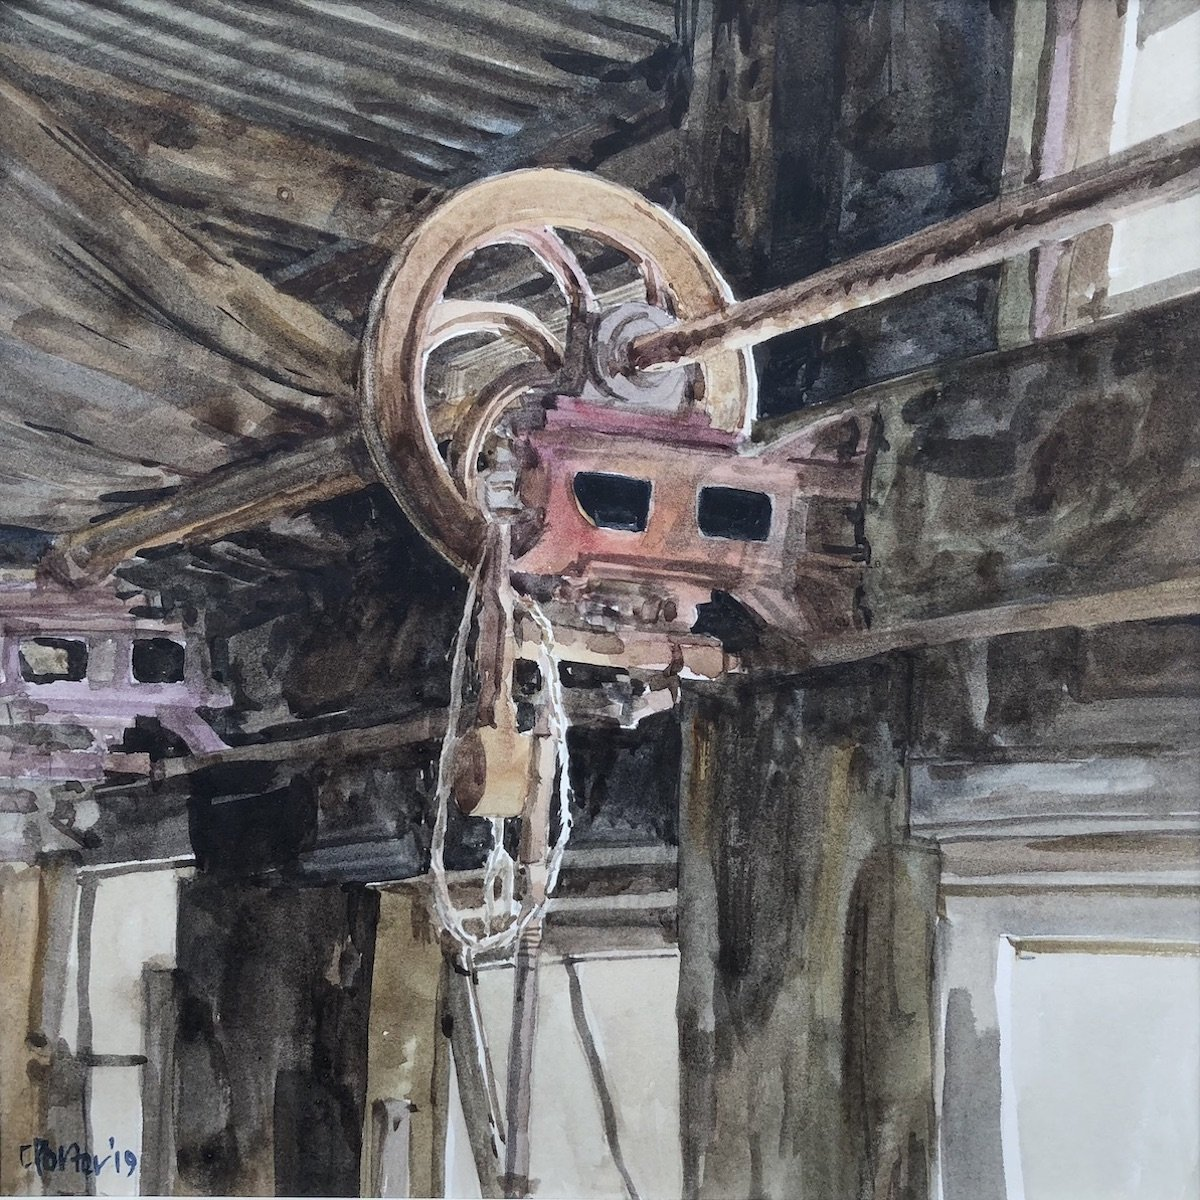 Watercolour painting by Christine Porter showing some overhead shearing gear, red, with the starting rope hooked over the wheel. behind it the roof is dark corrugated iron, and the windows that light the stand are open.